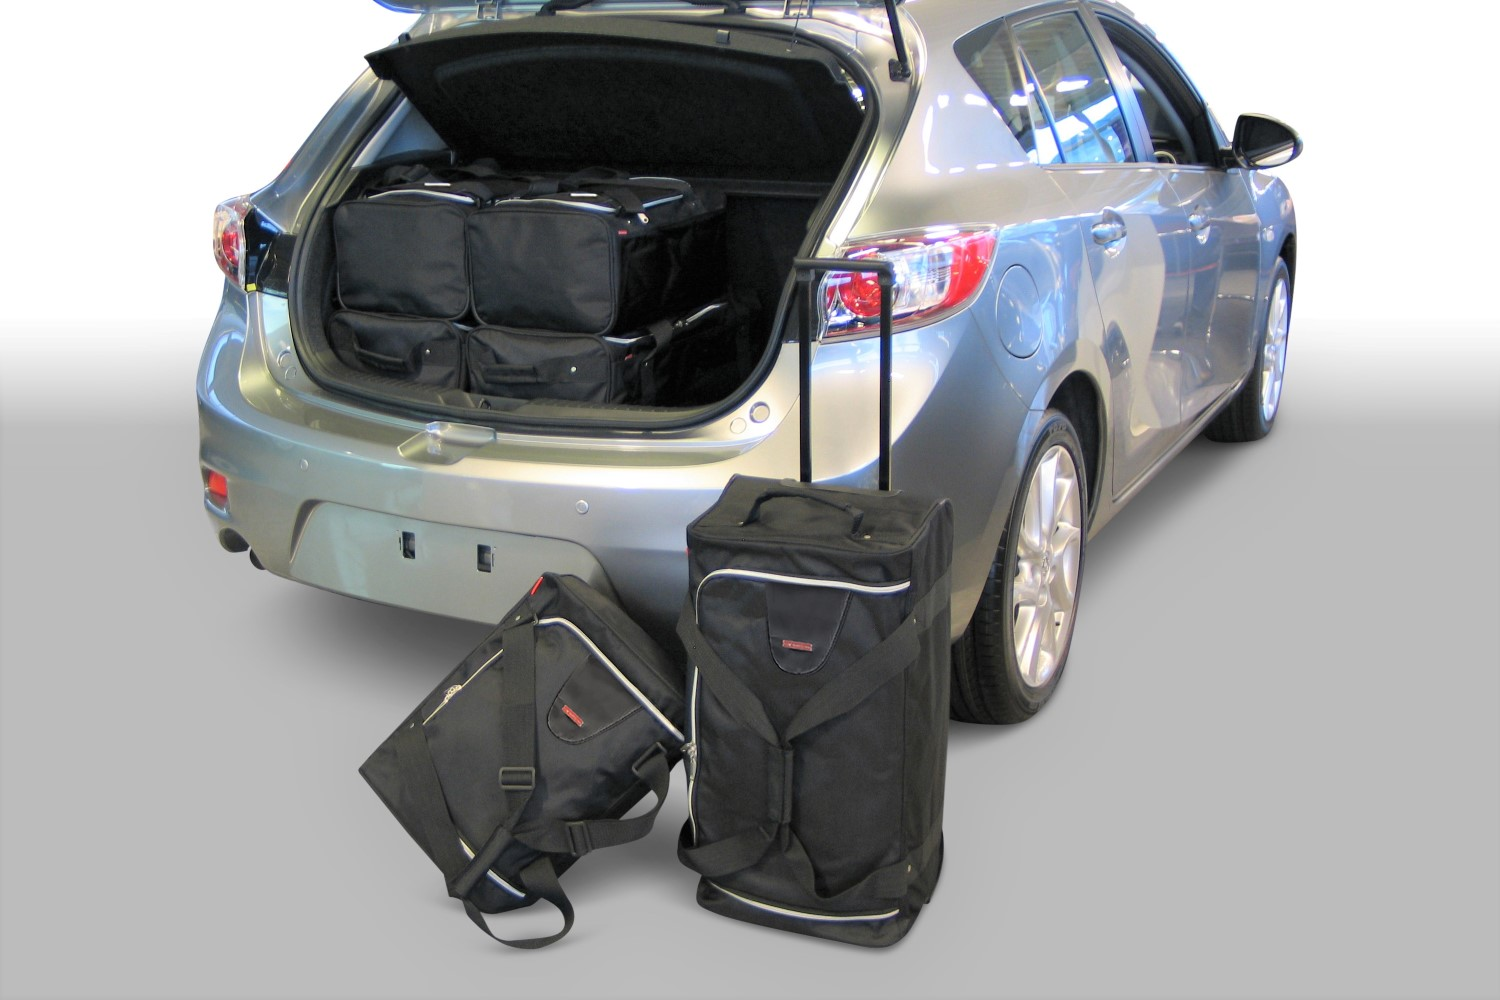 Mazda Mazda3 (BL) 2010-2013 5 door Car-Bags.com travel bag set (1)